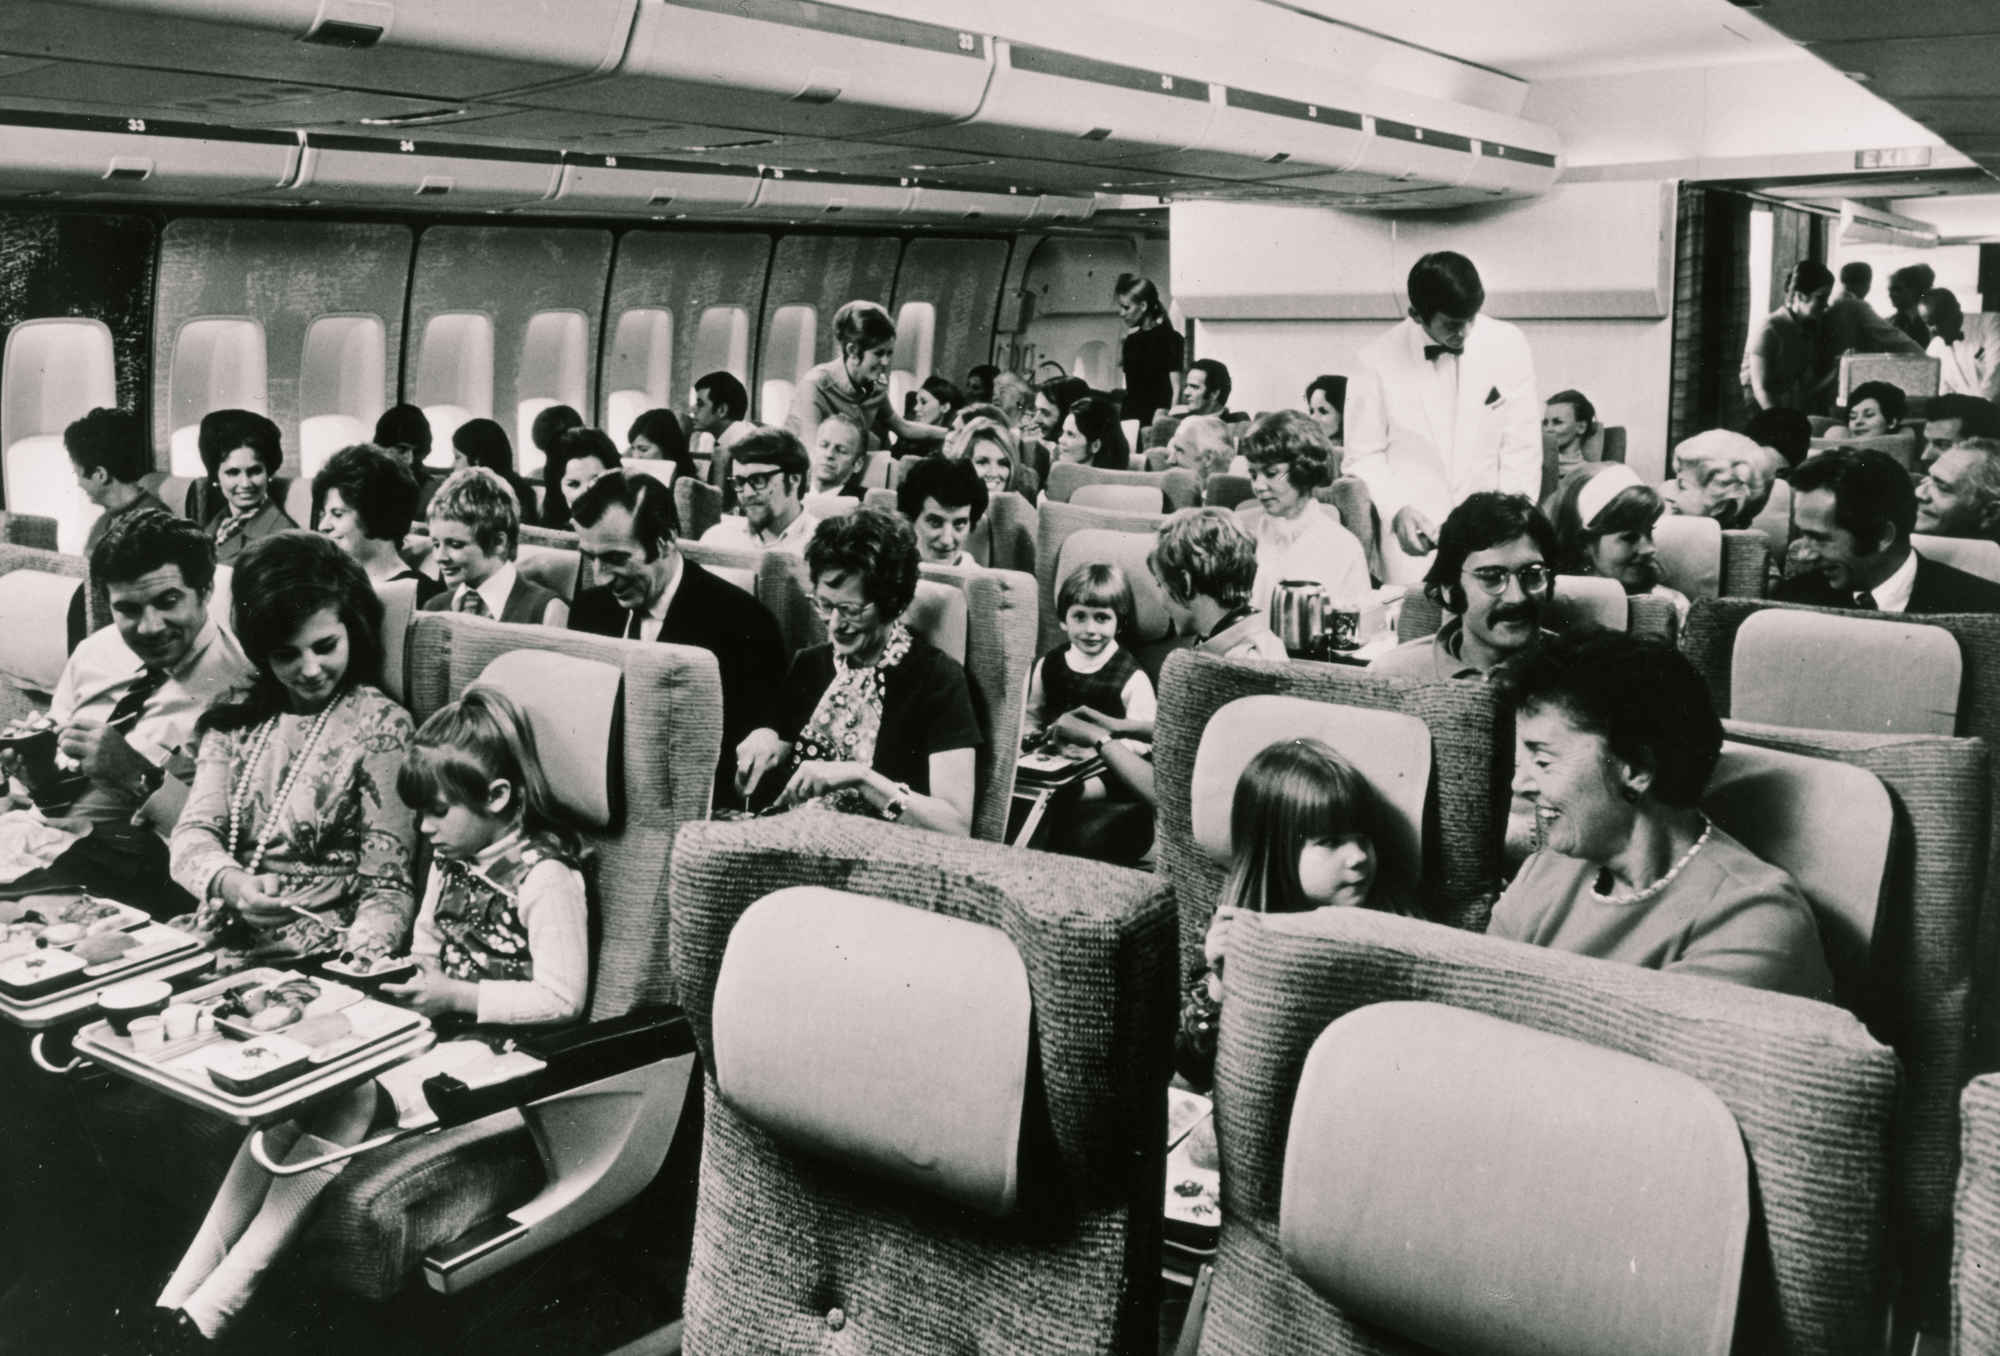 From a time when people traveled with less luggage—note the overhead bins. (image credit:  NPR , via SuperCompressor)